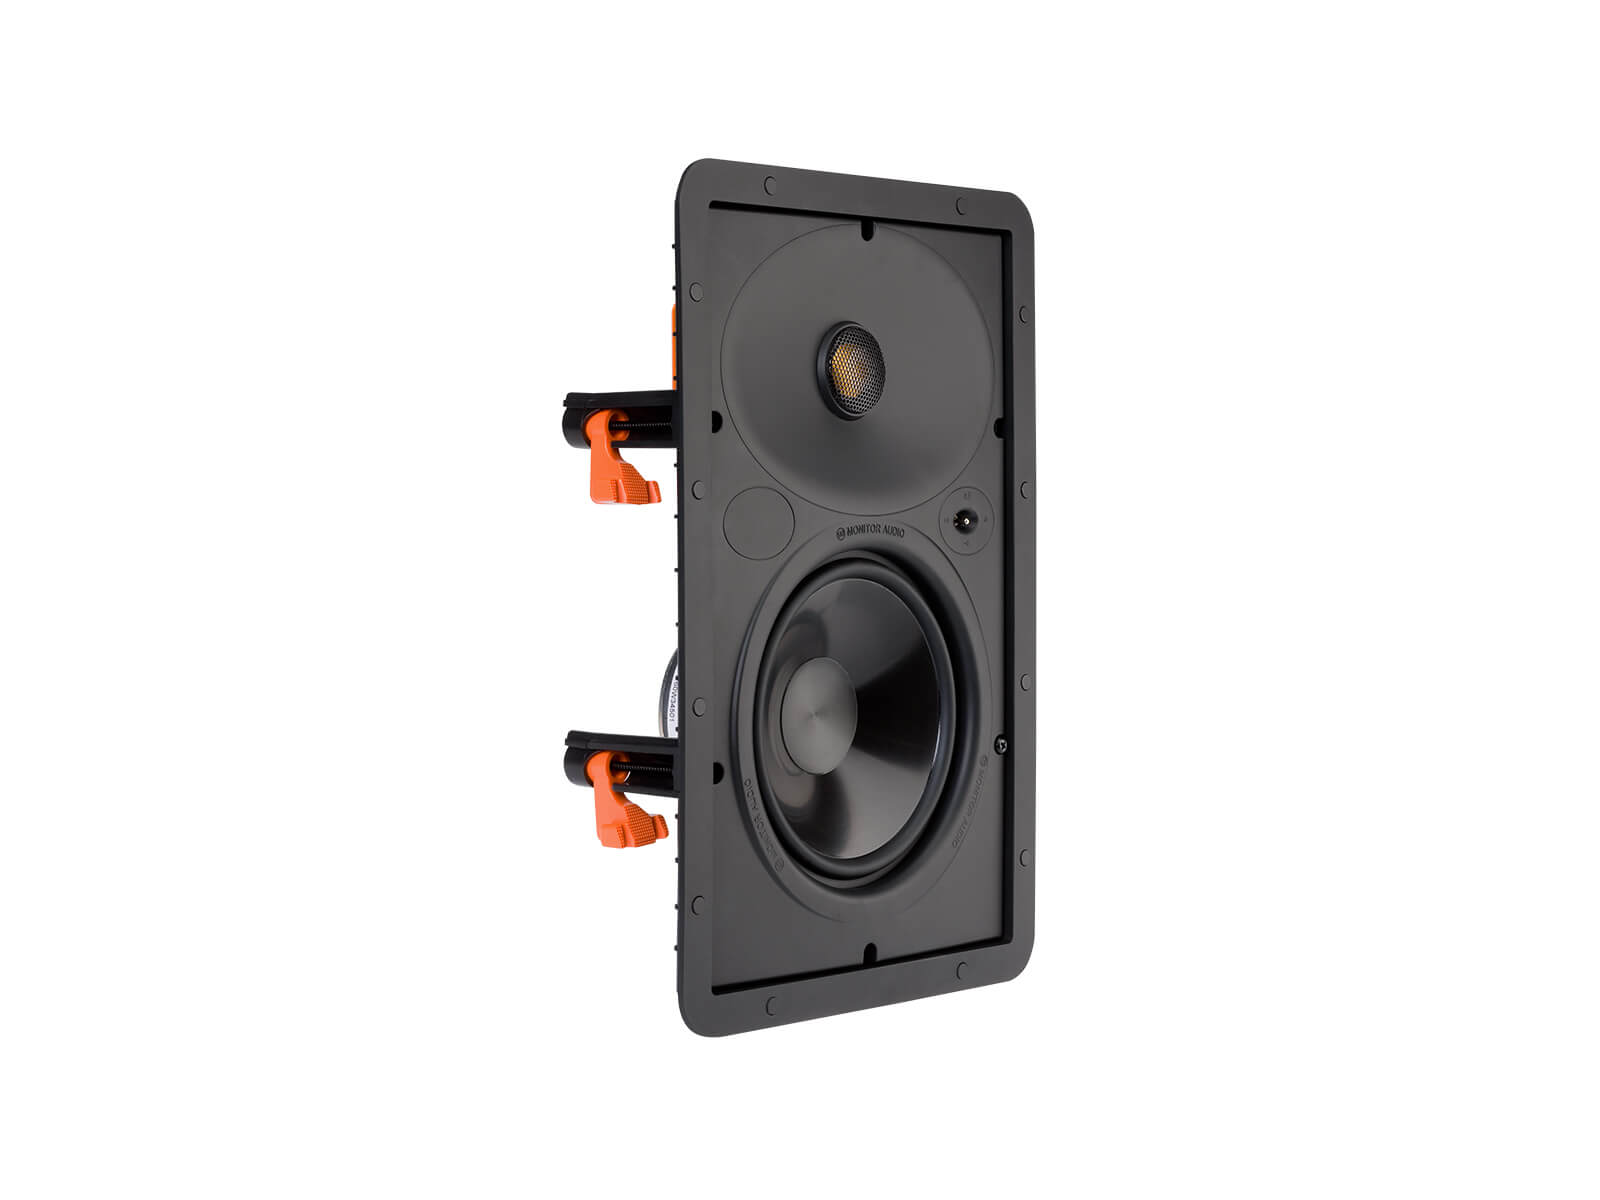 Core W165, front ISO, grille-less in-wall speakers.